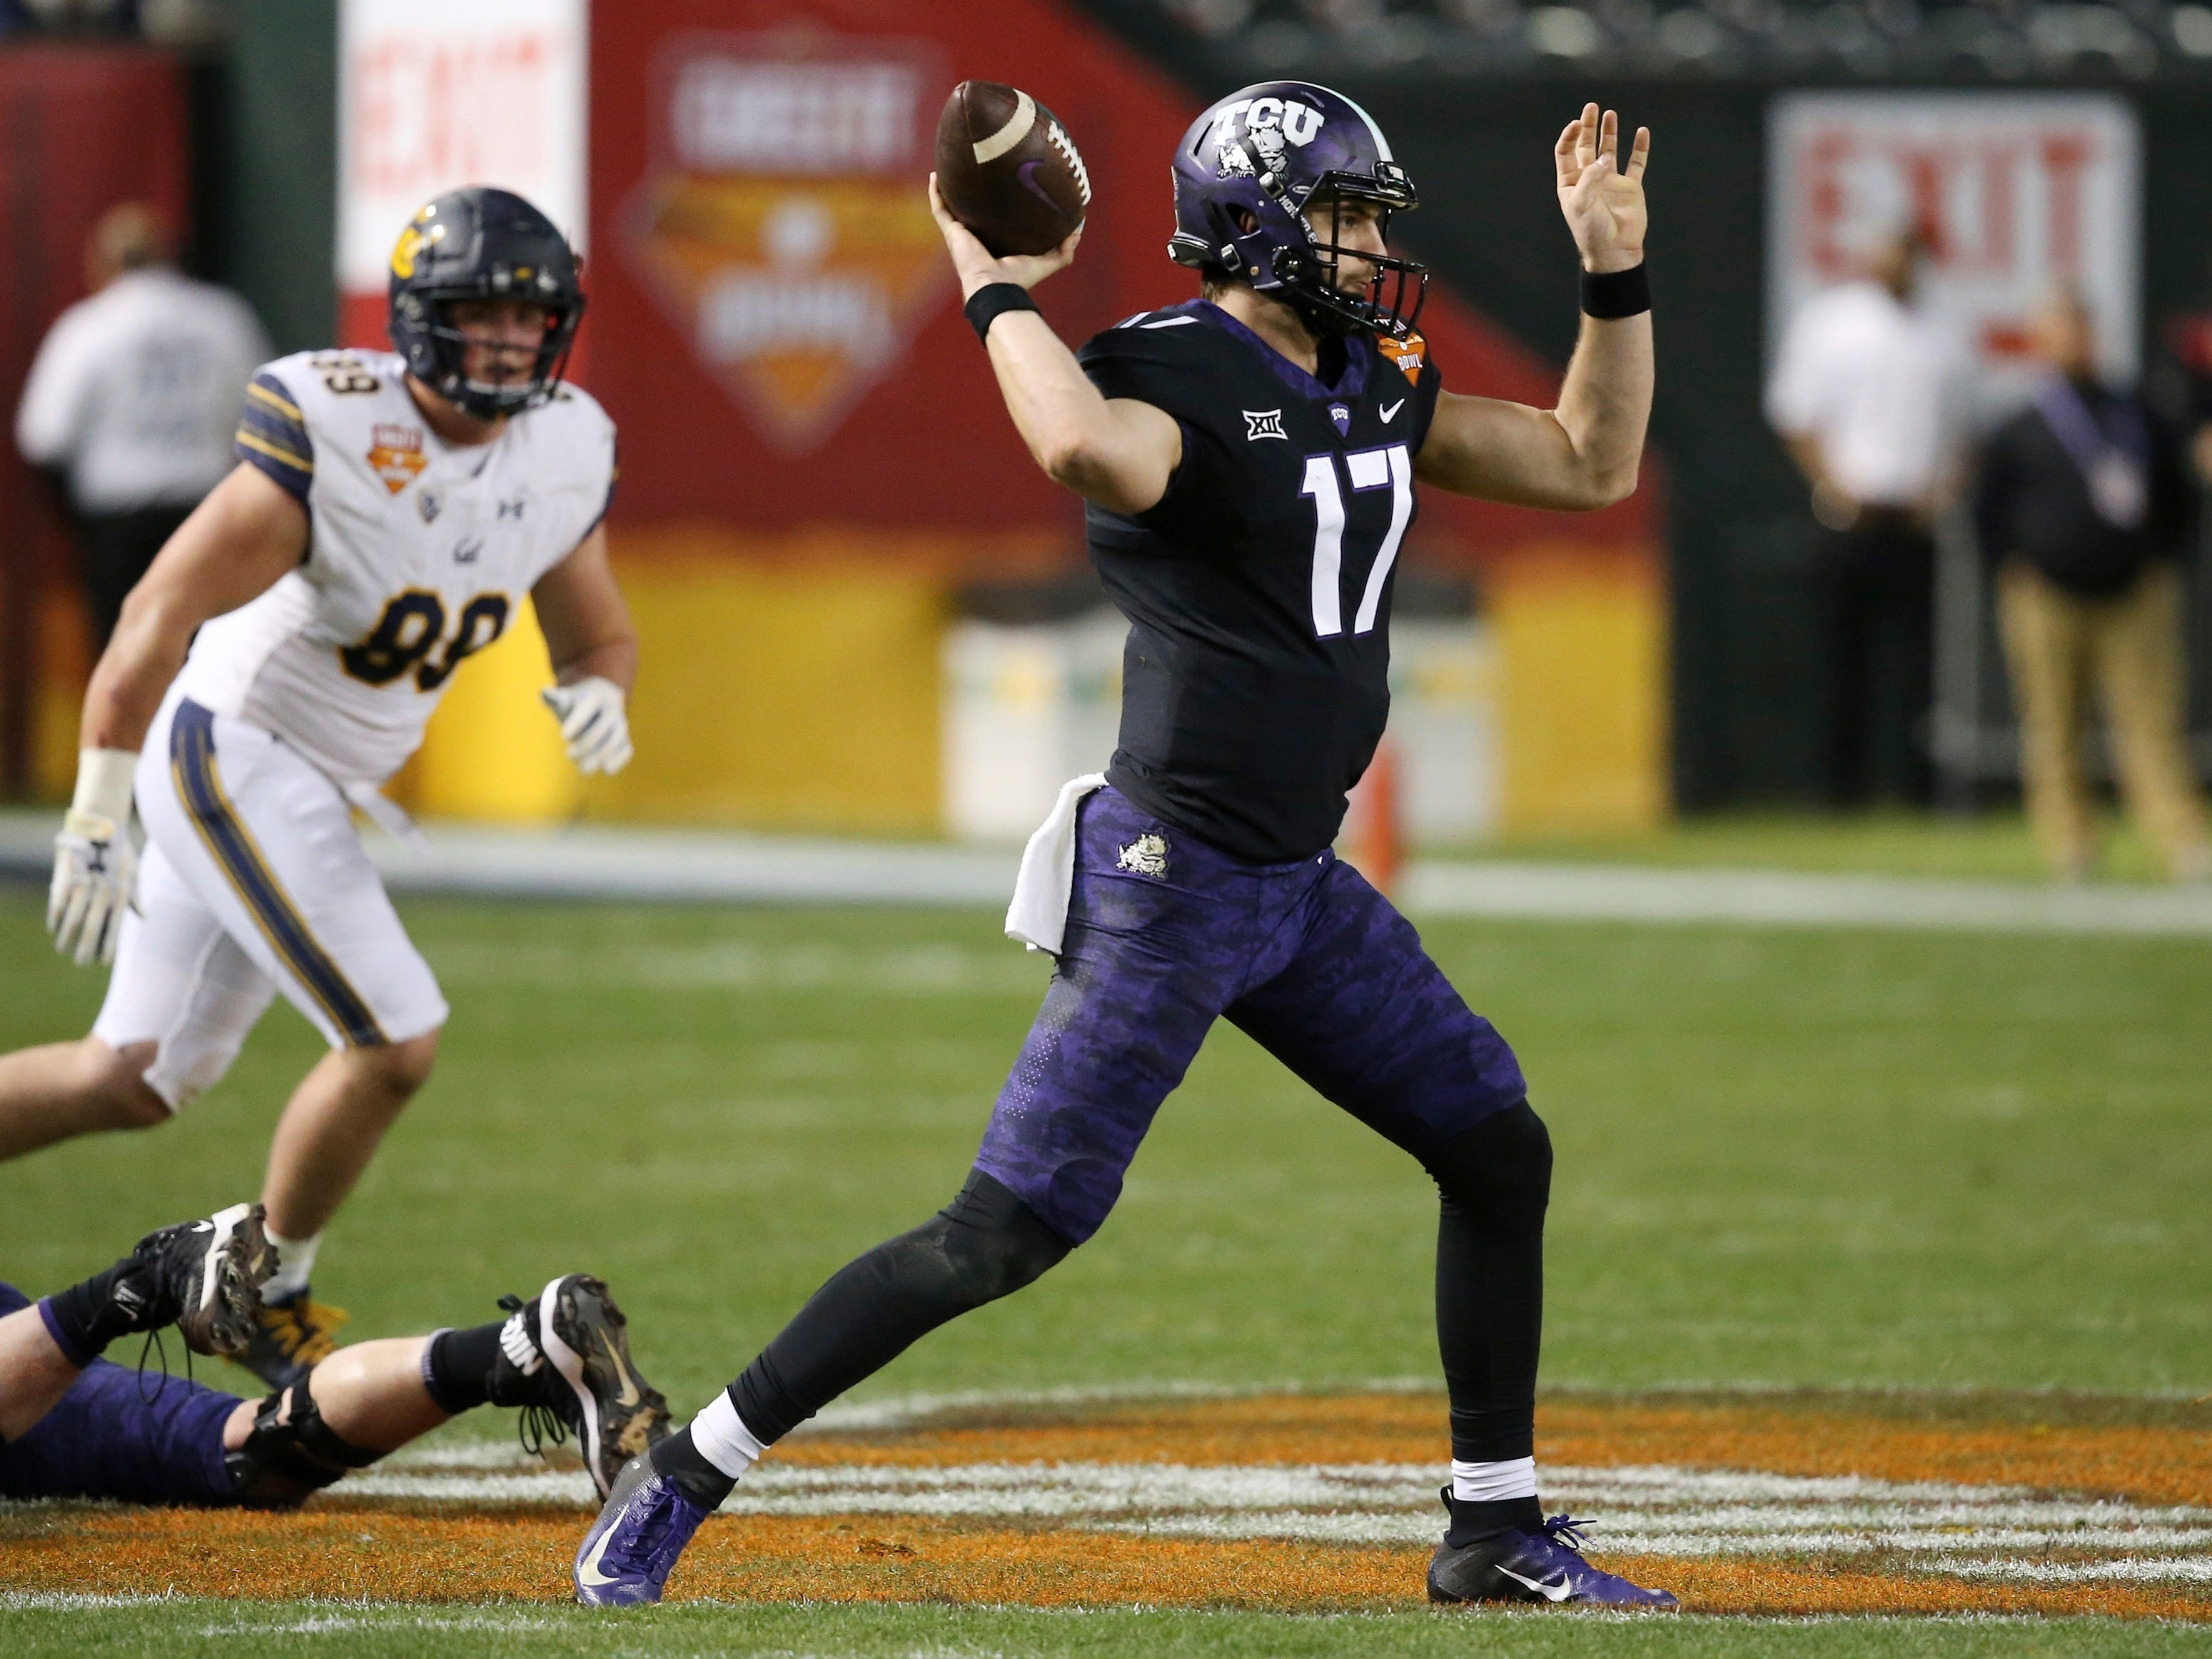 TCU quarterback Grayson Muehlstein (17) throws a pass as California linebacker Evan Weaver, left, watches during the first half of the Cheez-It Bowl NCAA college football game Wednesday, Dec. 26, 2018, in Phoenix.